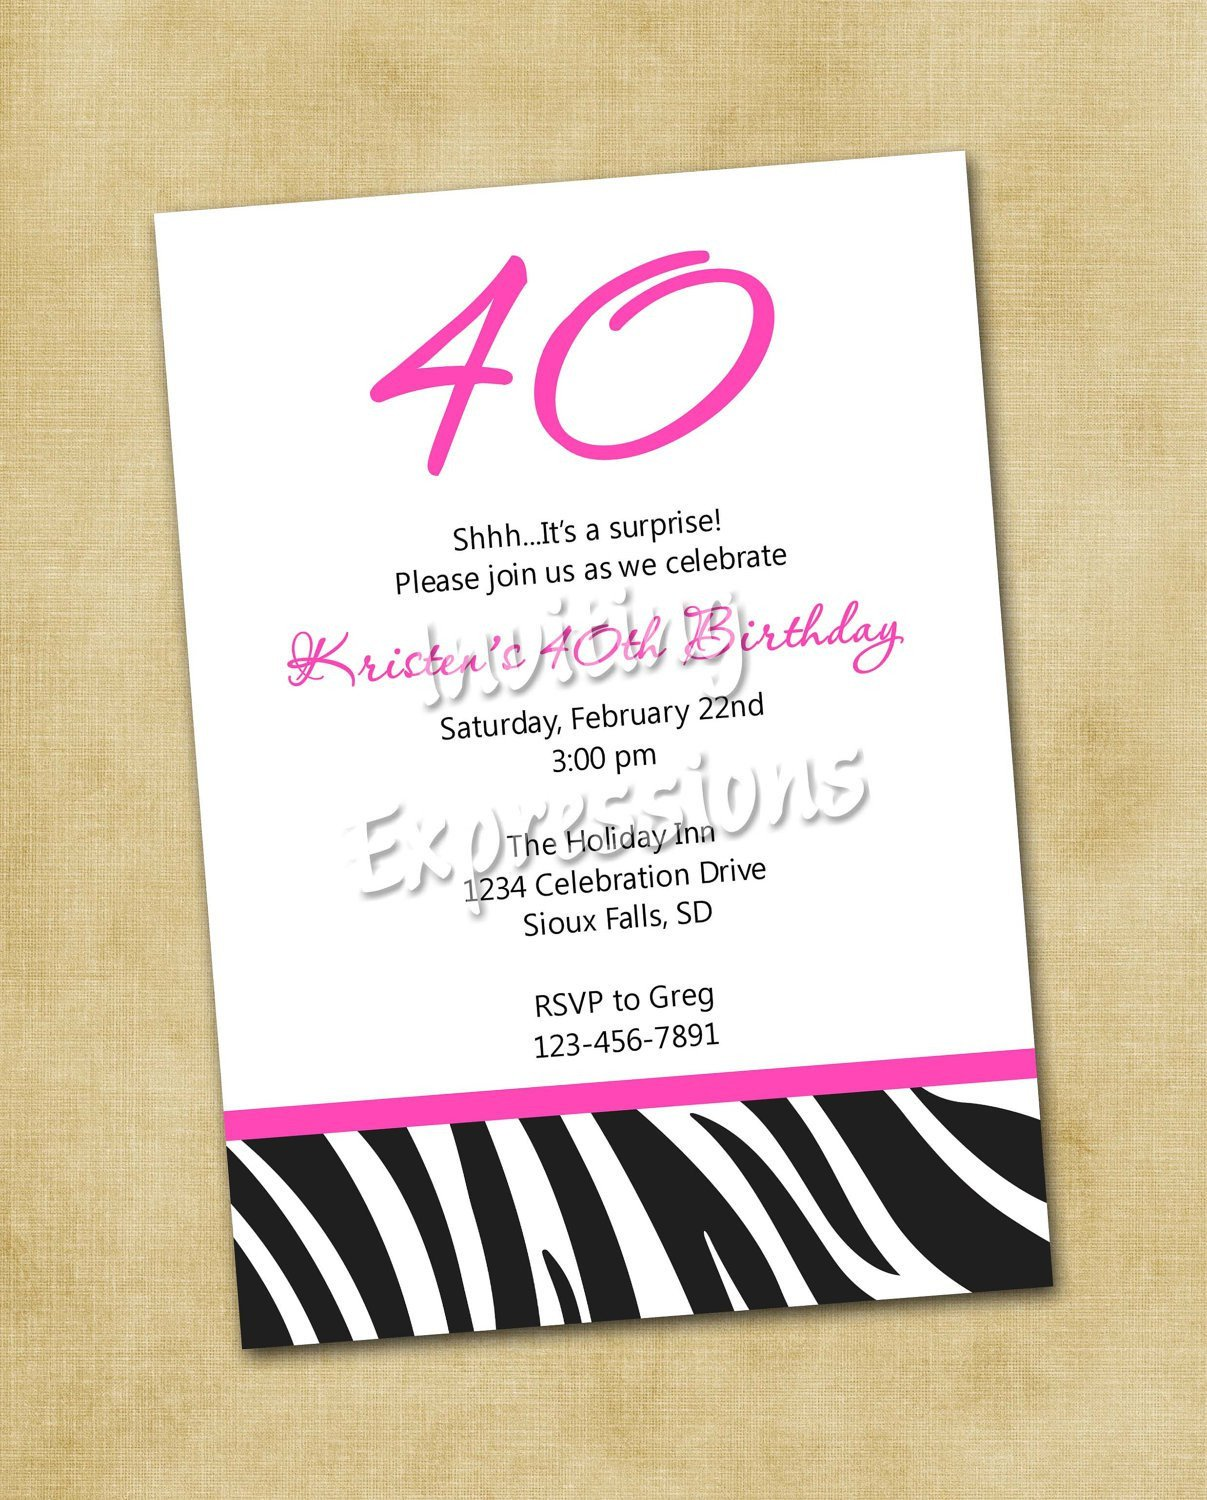 40th Birthday Invitation Wording Surprise 40th Birthday Invitation Wording Samples